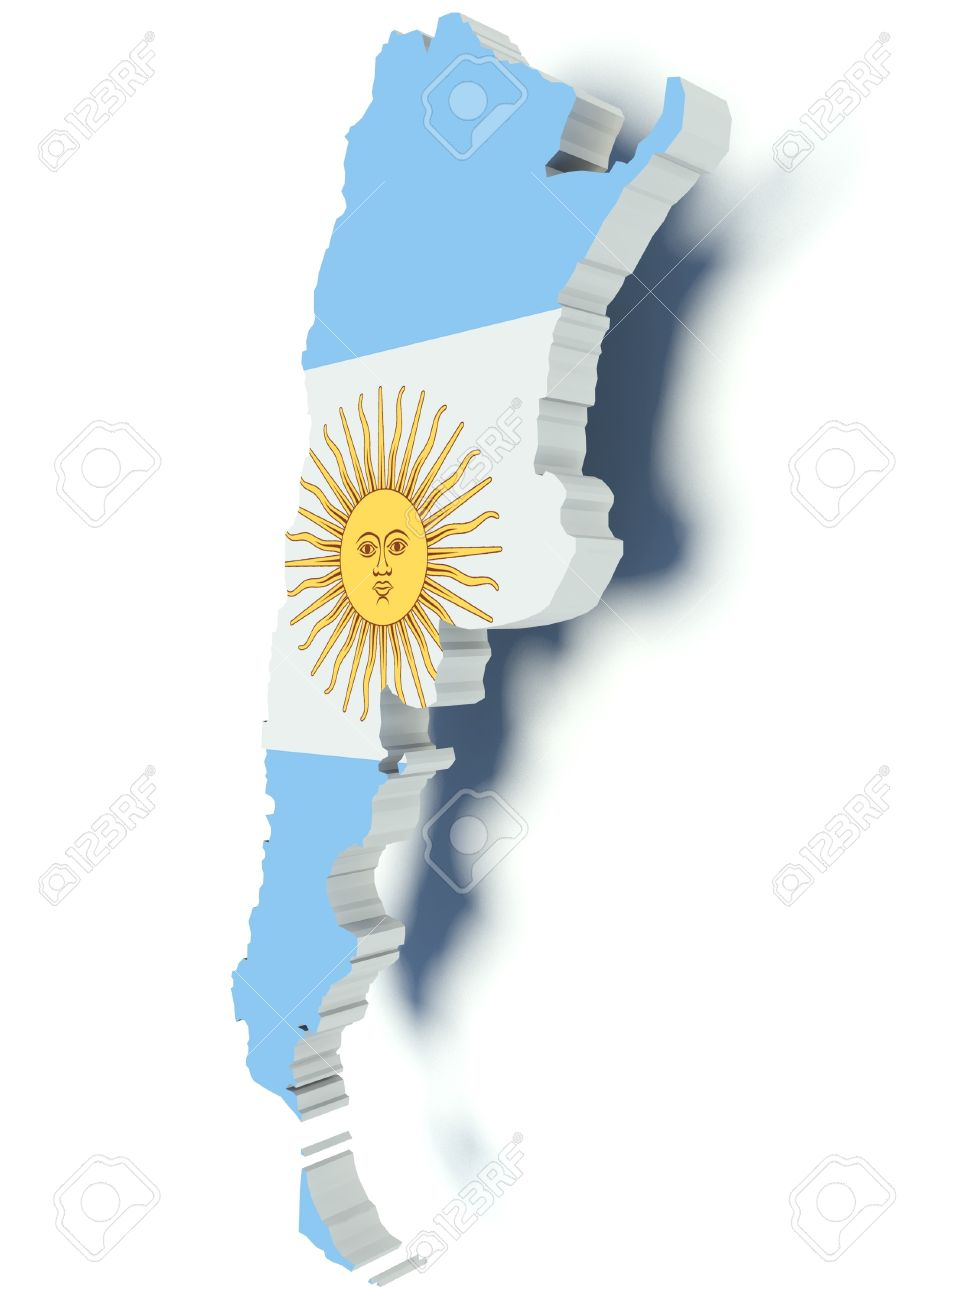 Map Of Argentina With Flag Colors D Render Illustration Stock - Argentina 3d map